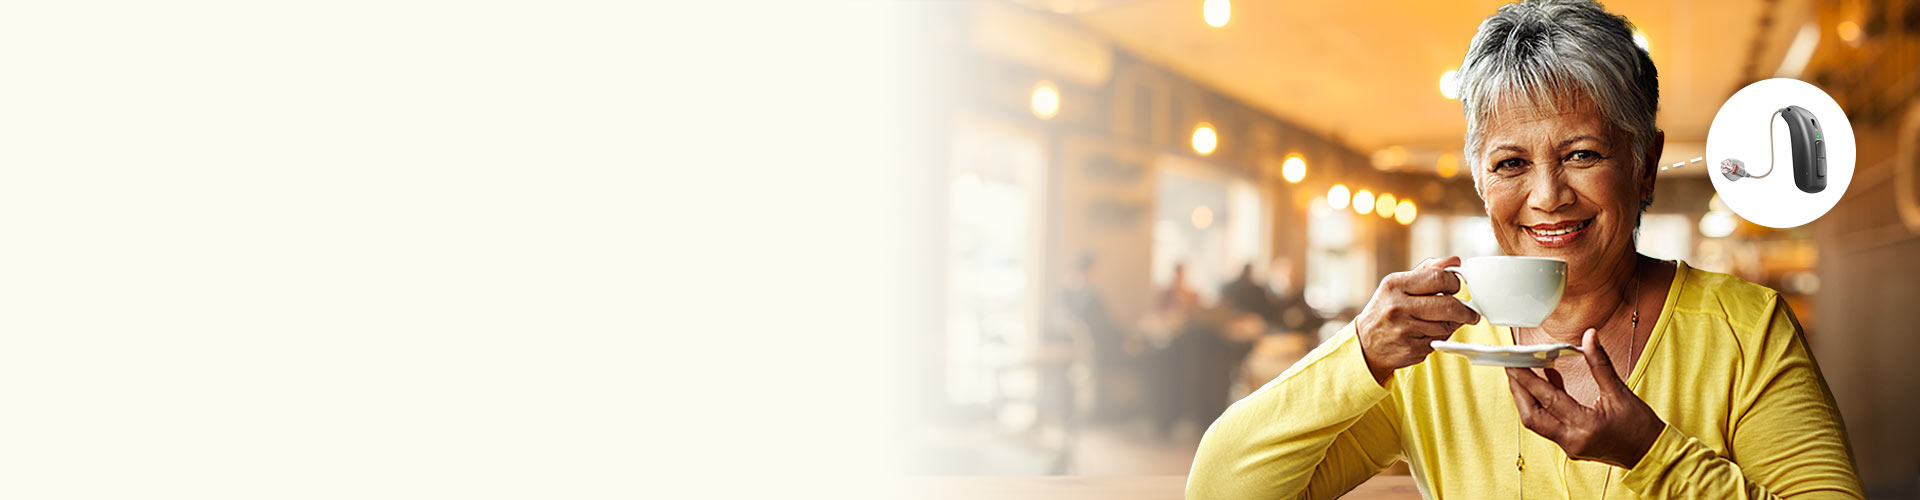 woman_smiling_in_restaurant